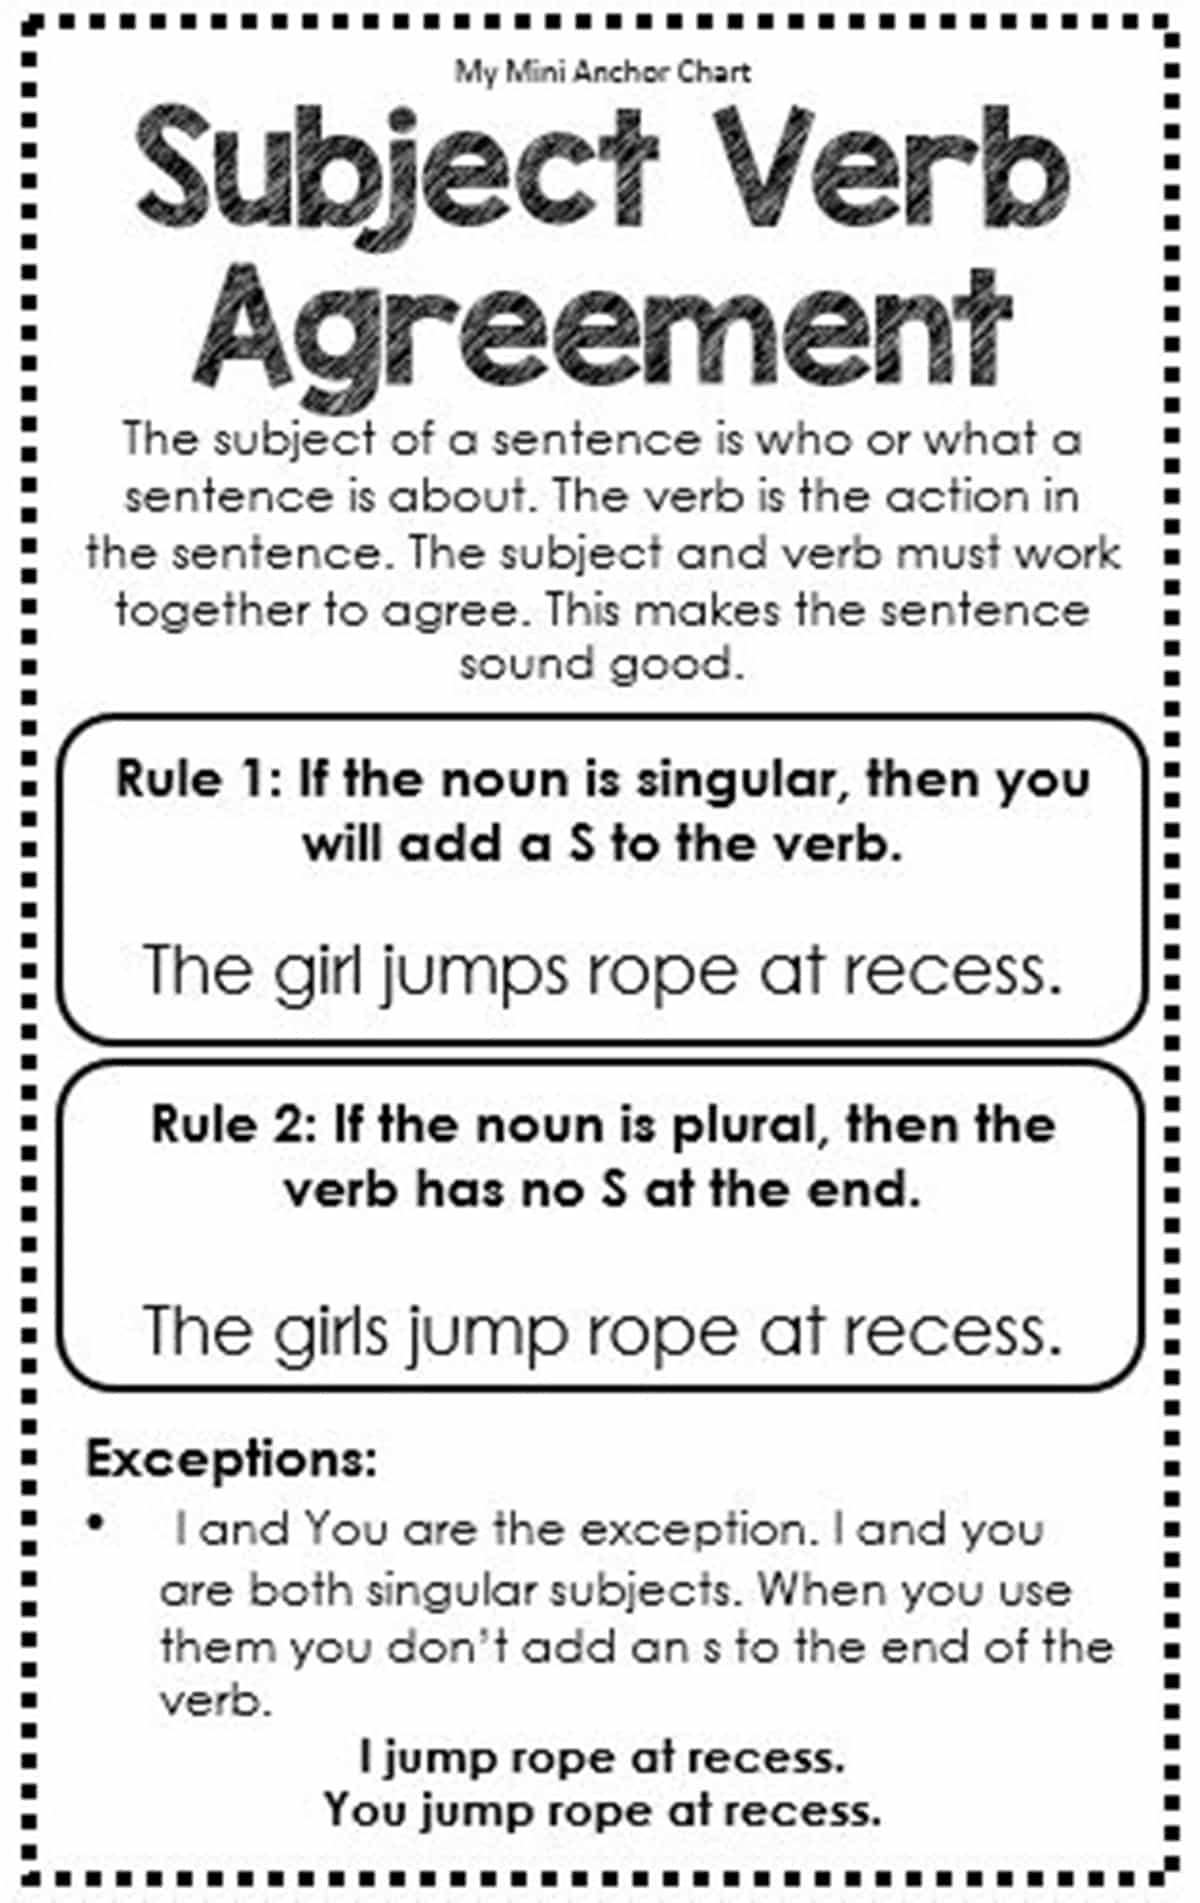 Worksheets Subject Verb Agreement Worksheets With Answers must know rules for subject verb agreement esl buzz the one and is are both singular mentally omit prepositional phrase to make easier to